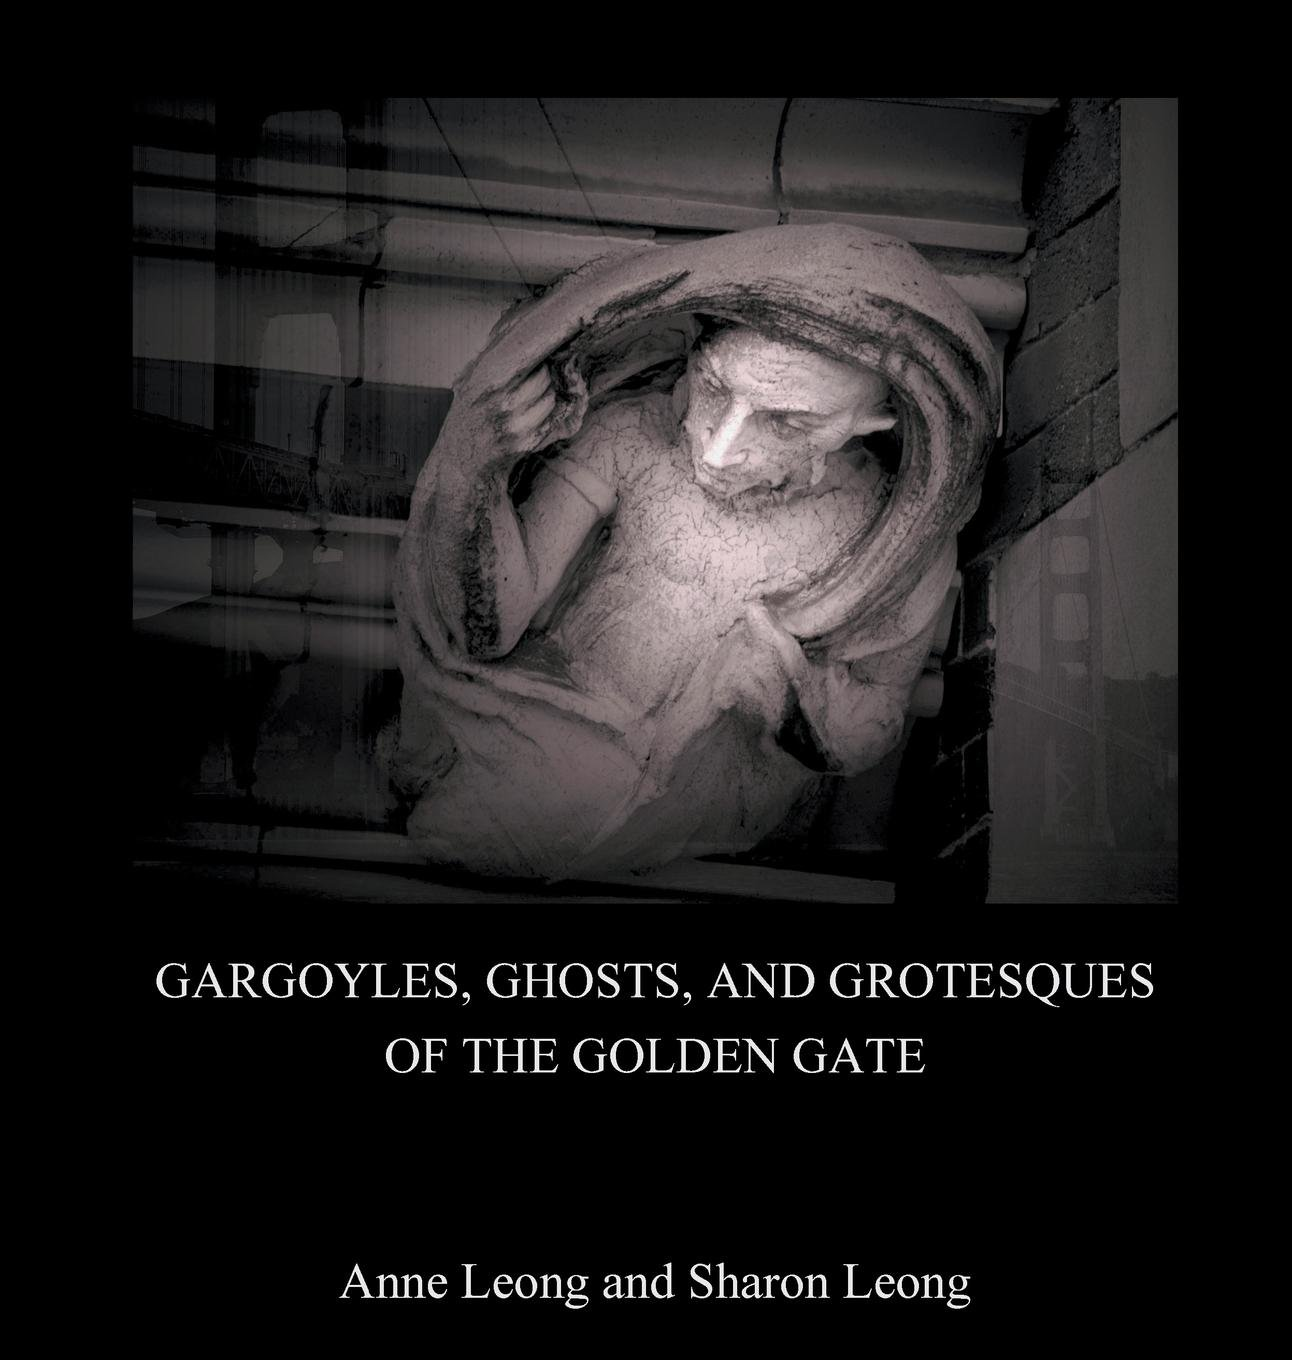 Gargoyles, Ghosts, and Grotesques of the Golden Gate pdf